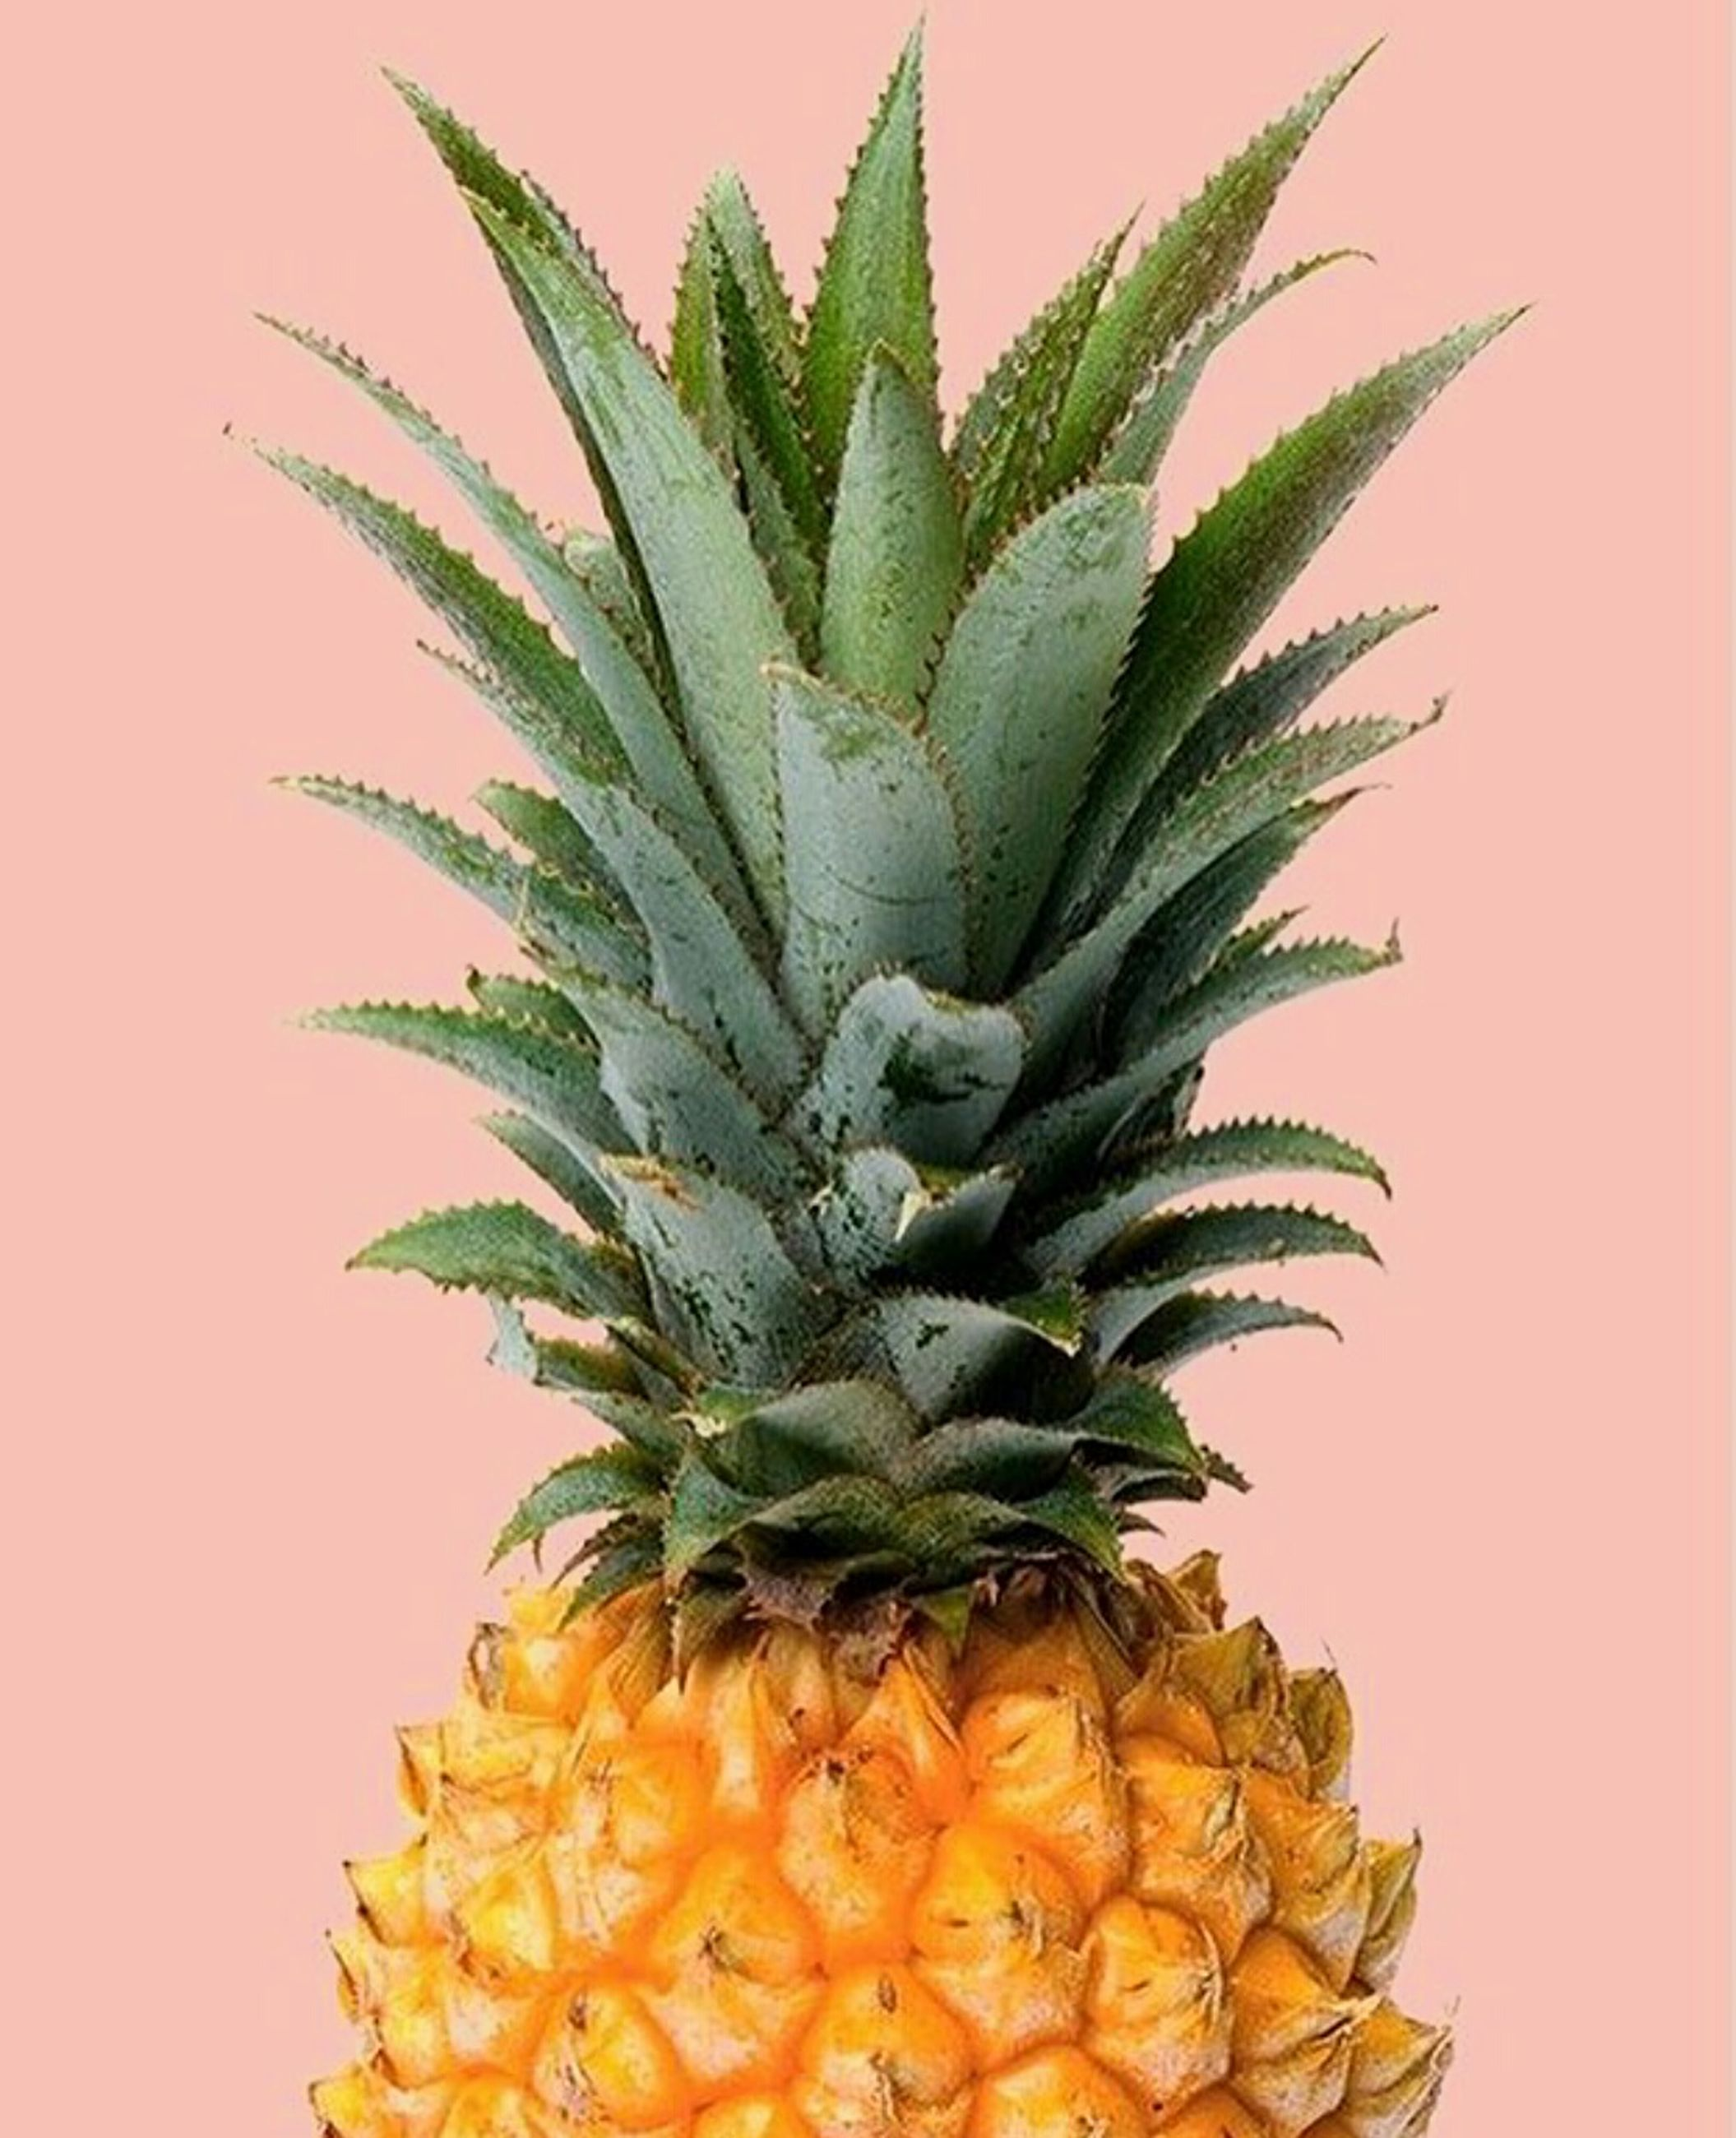 pineapple, freshness, food and drink, leaf, close-up, white background, growth, studio shot, variation, green color, houseplant, choice, nature, succulent plant, multi colored, large group of objects, retail, tropical tree